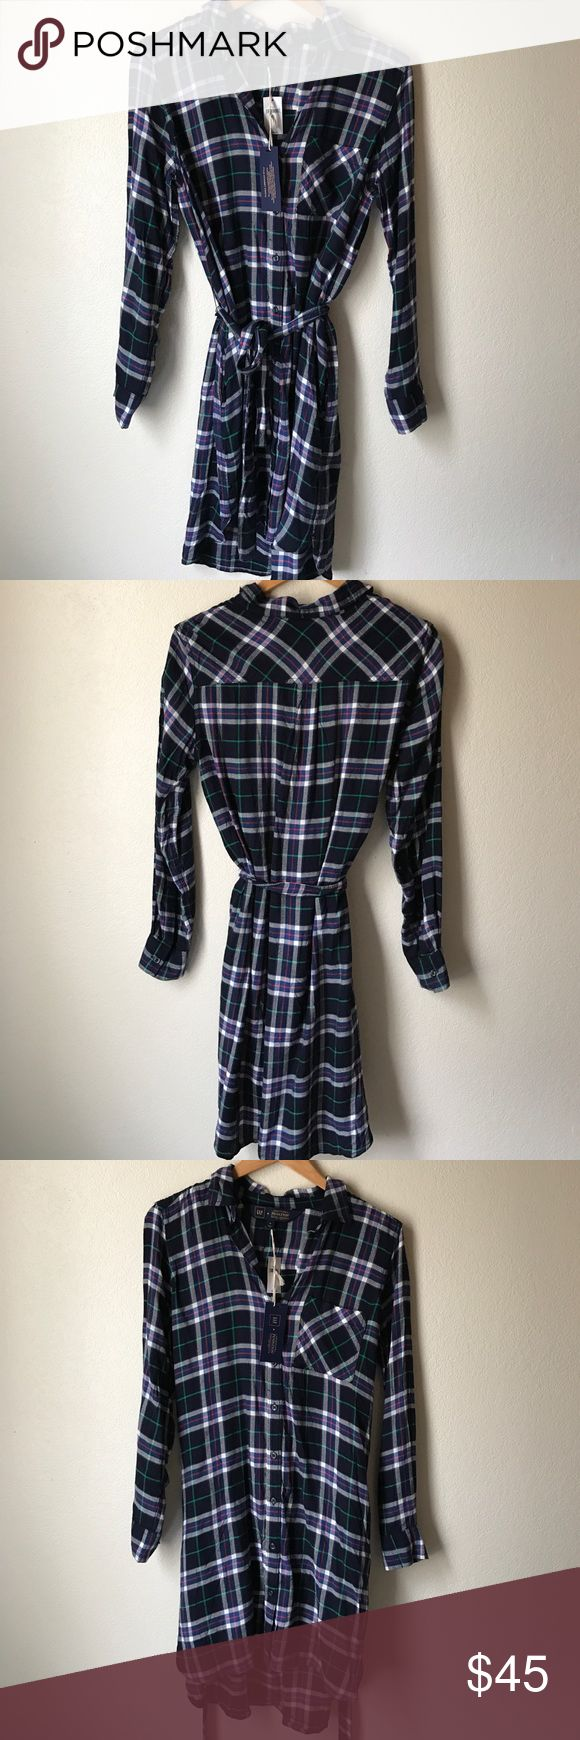 NWT Gap + Pendleton flannel shirt dress This flannel shirt dress is from the Gap + Pendleton collaboration. Colors in plaid pattern are navy, green, red, and white. There are pockets on the hips and it comes with a tie belt. Brand new and never worn. ❌ no trades. GAP Dresses